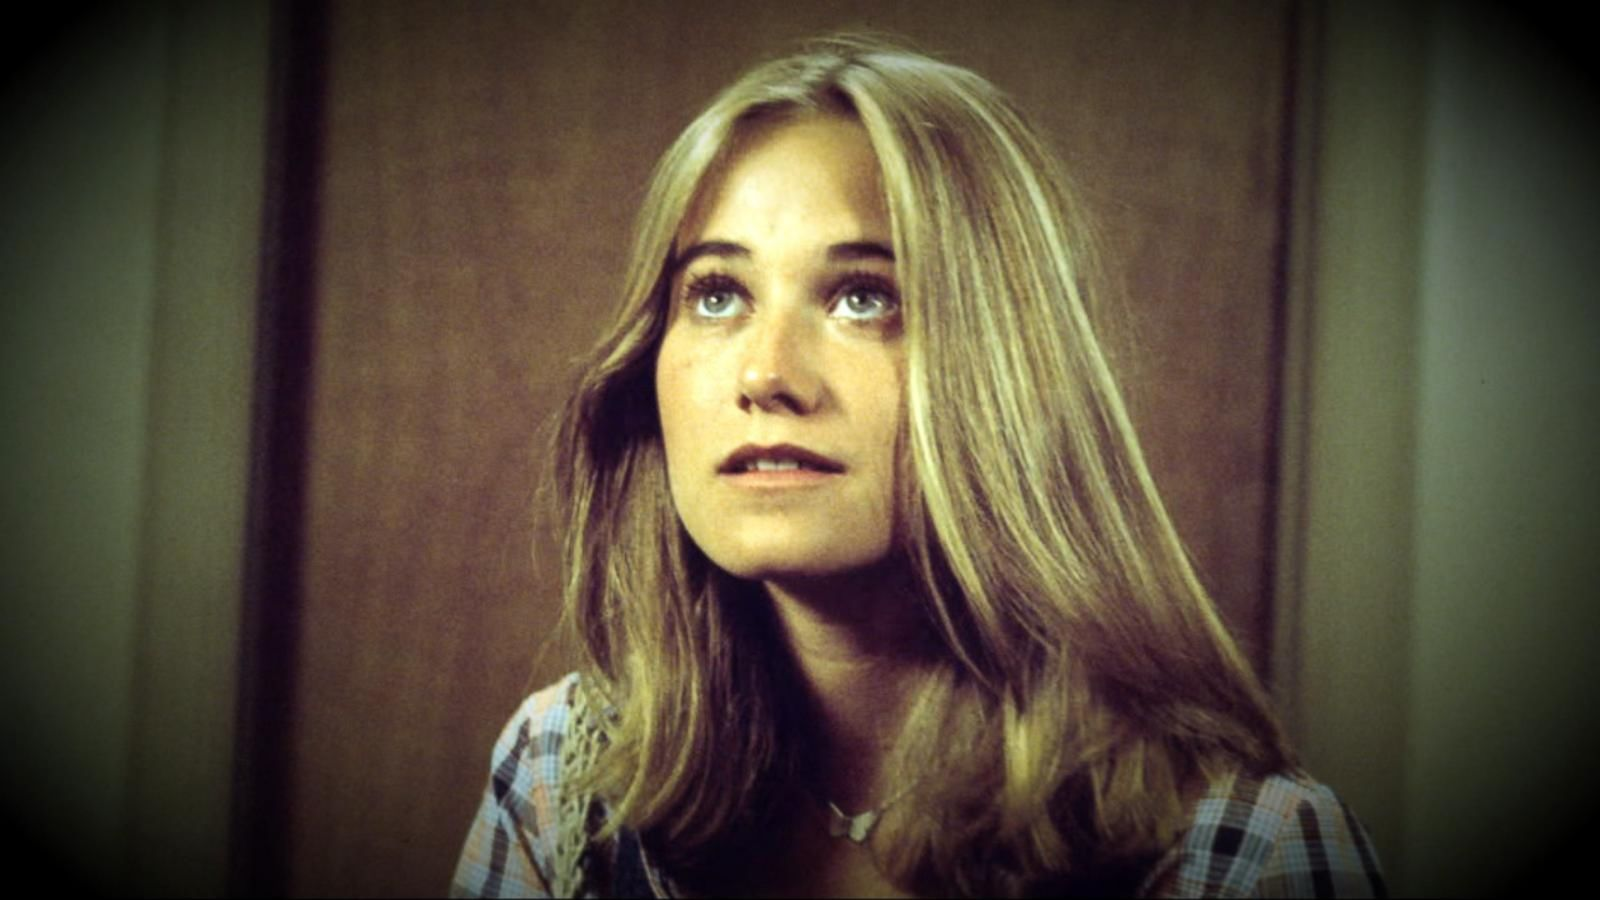 VIDEO: Maureen McCormick on 'DWTS,' Her Struggles with a Dark Past